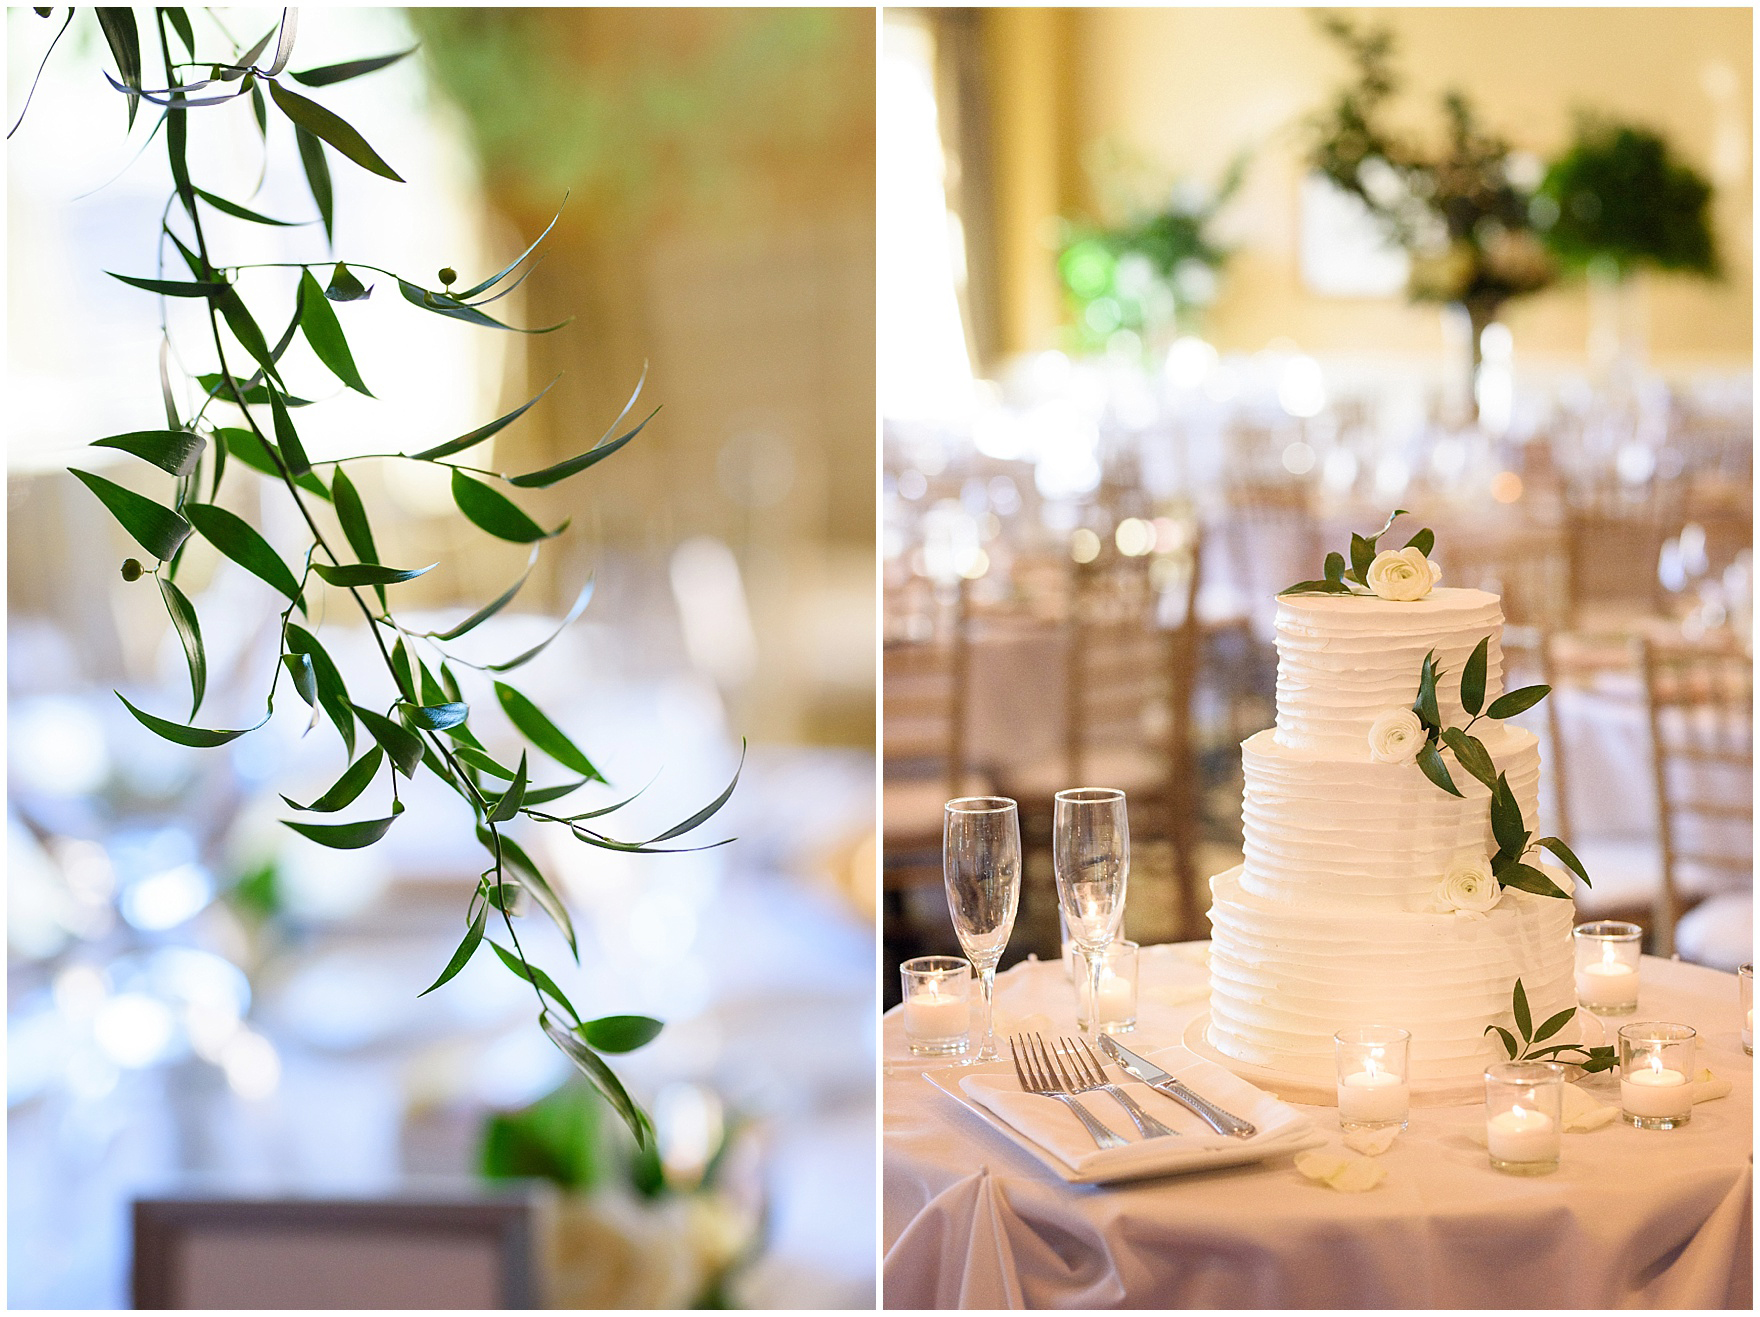 A cake by Toni Patisserie is adorned with flowers and greenery during a Butterfield Country Club wedding.